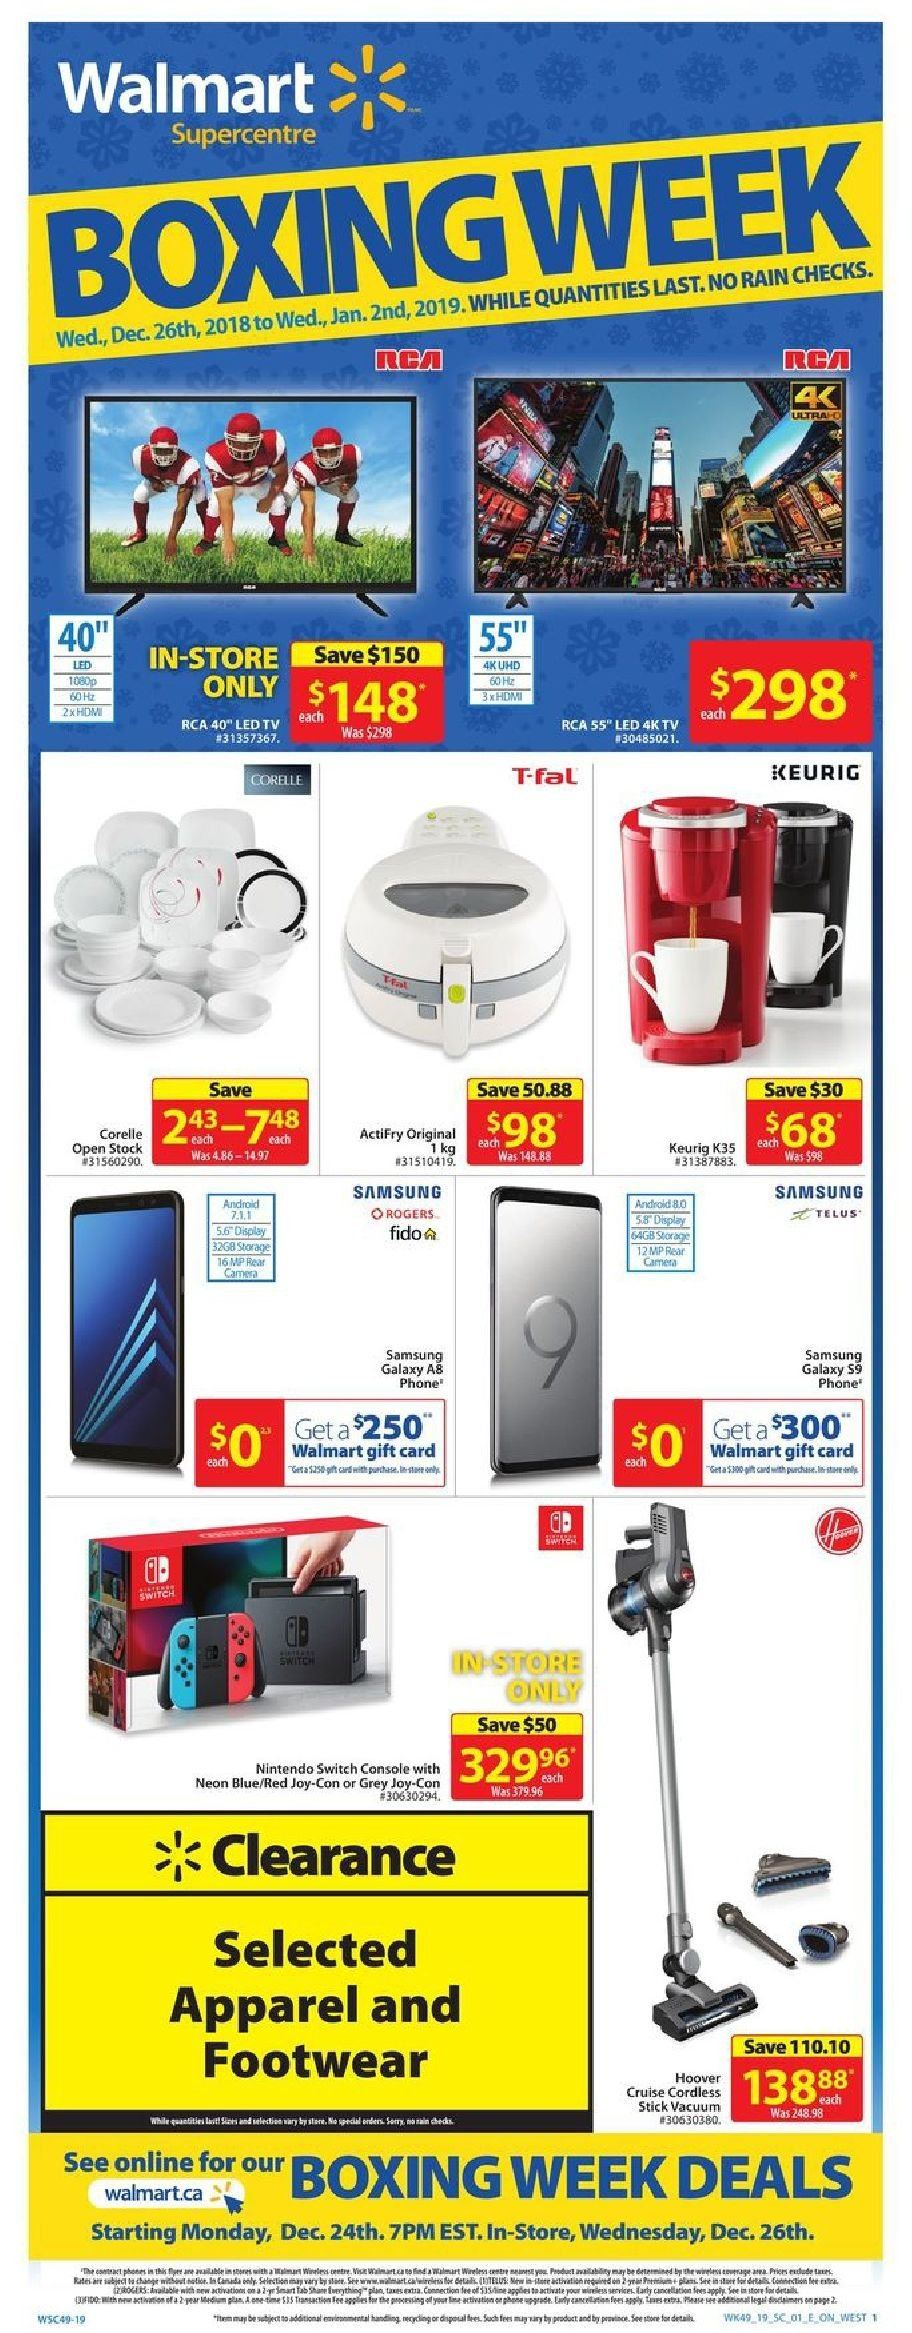 Walmart Flyer - December 26, 2018 - January 02, 2019 - Sales products - android, apparel, caméra, console, galaxy, led tv, rca, samsung, switch, vacuum, hdmi, nintendo, gift card, footwear, nintendo switch. Page 1.